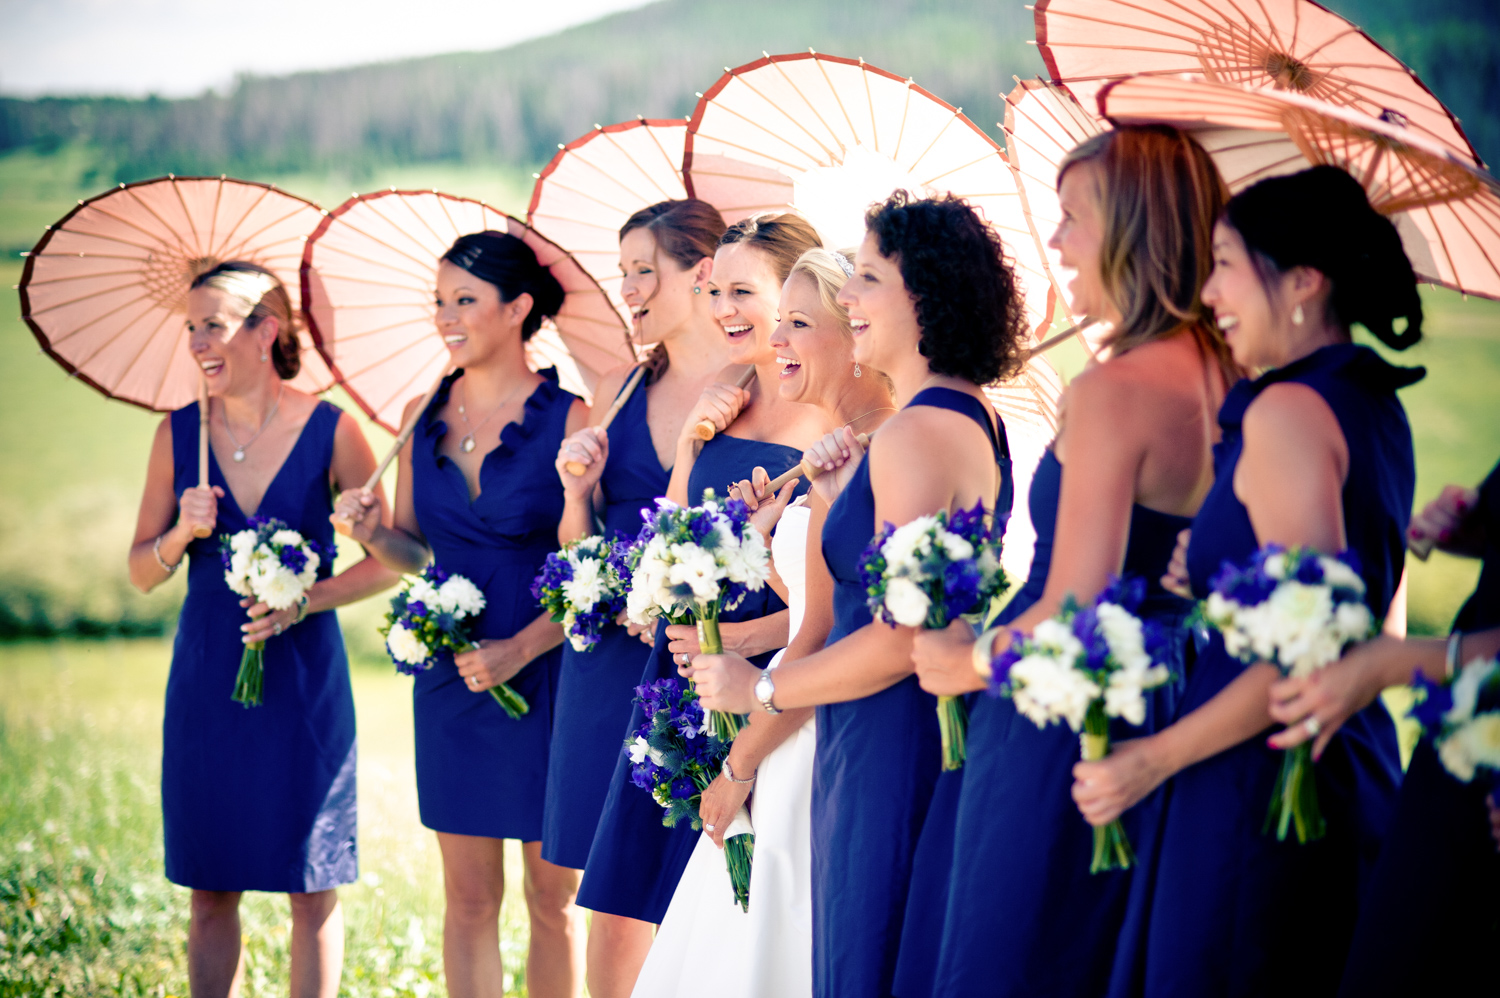 Steamboat_Springs_Wedding_024.JPG